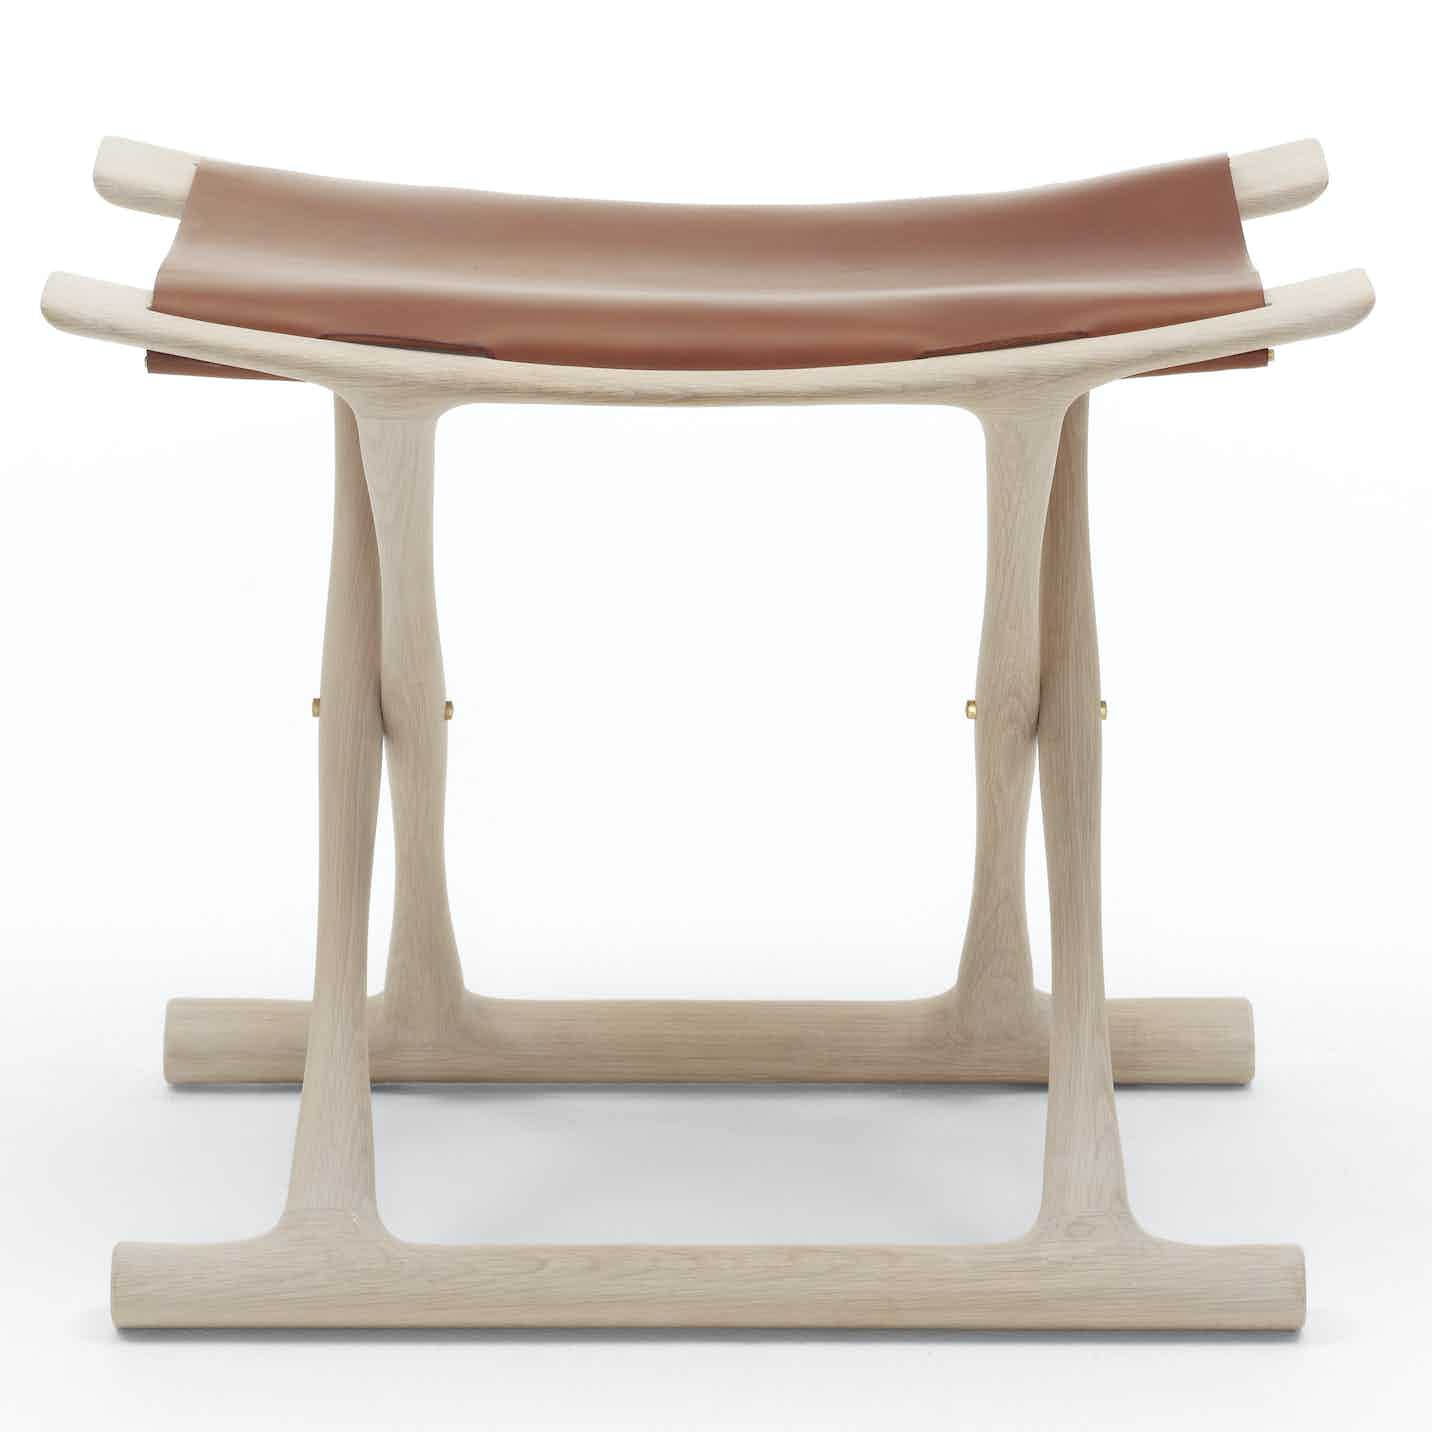 Carl-hansen-son-tan-side-ow2000-haute-living